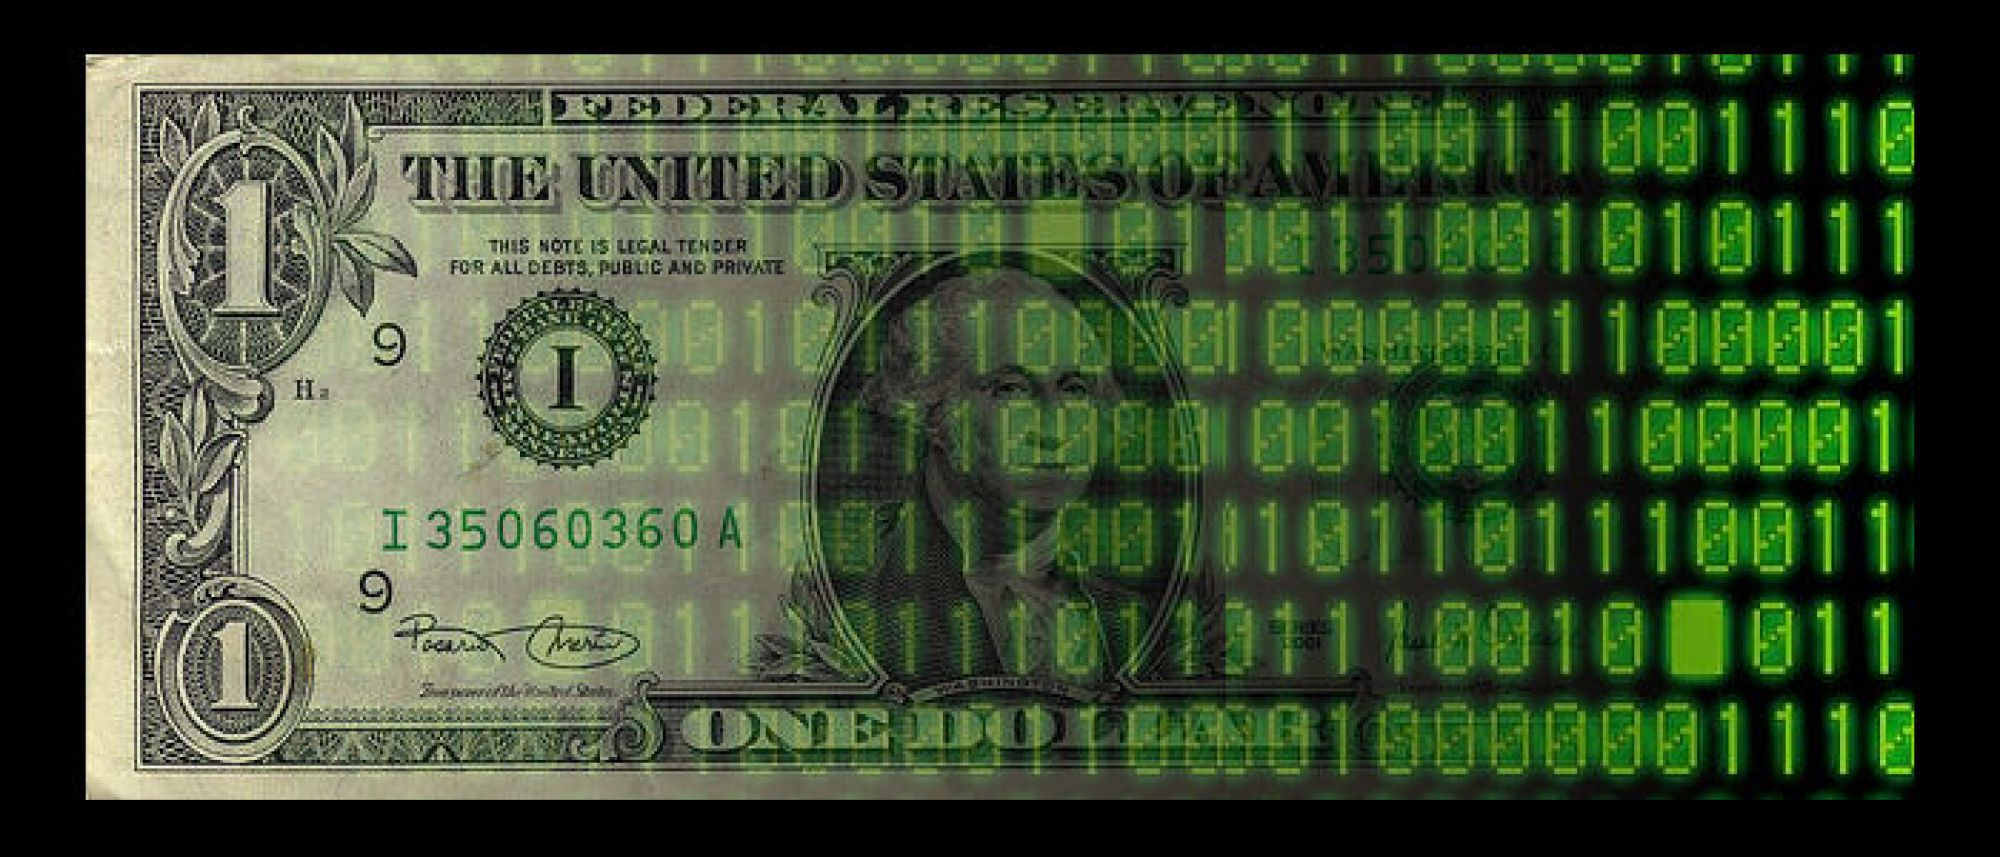 The US Federal Reserve is considering work on a digital dollar